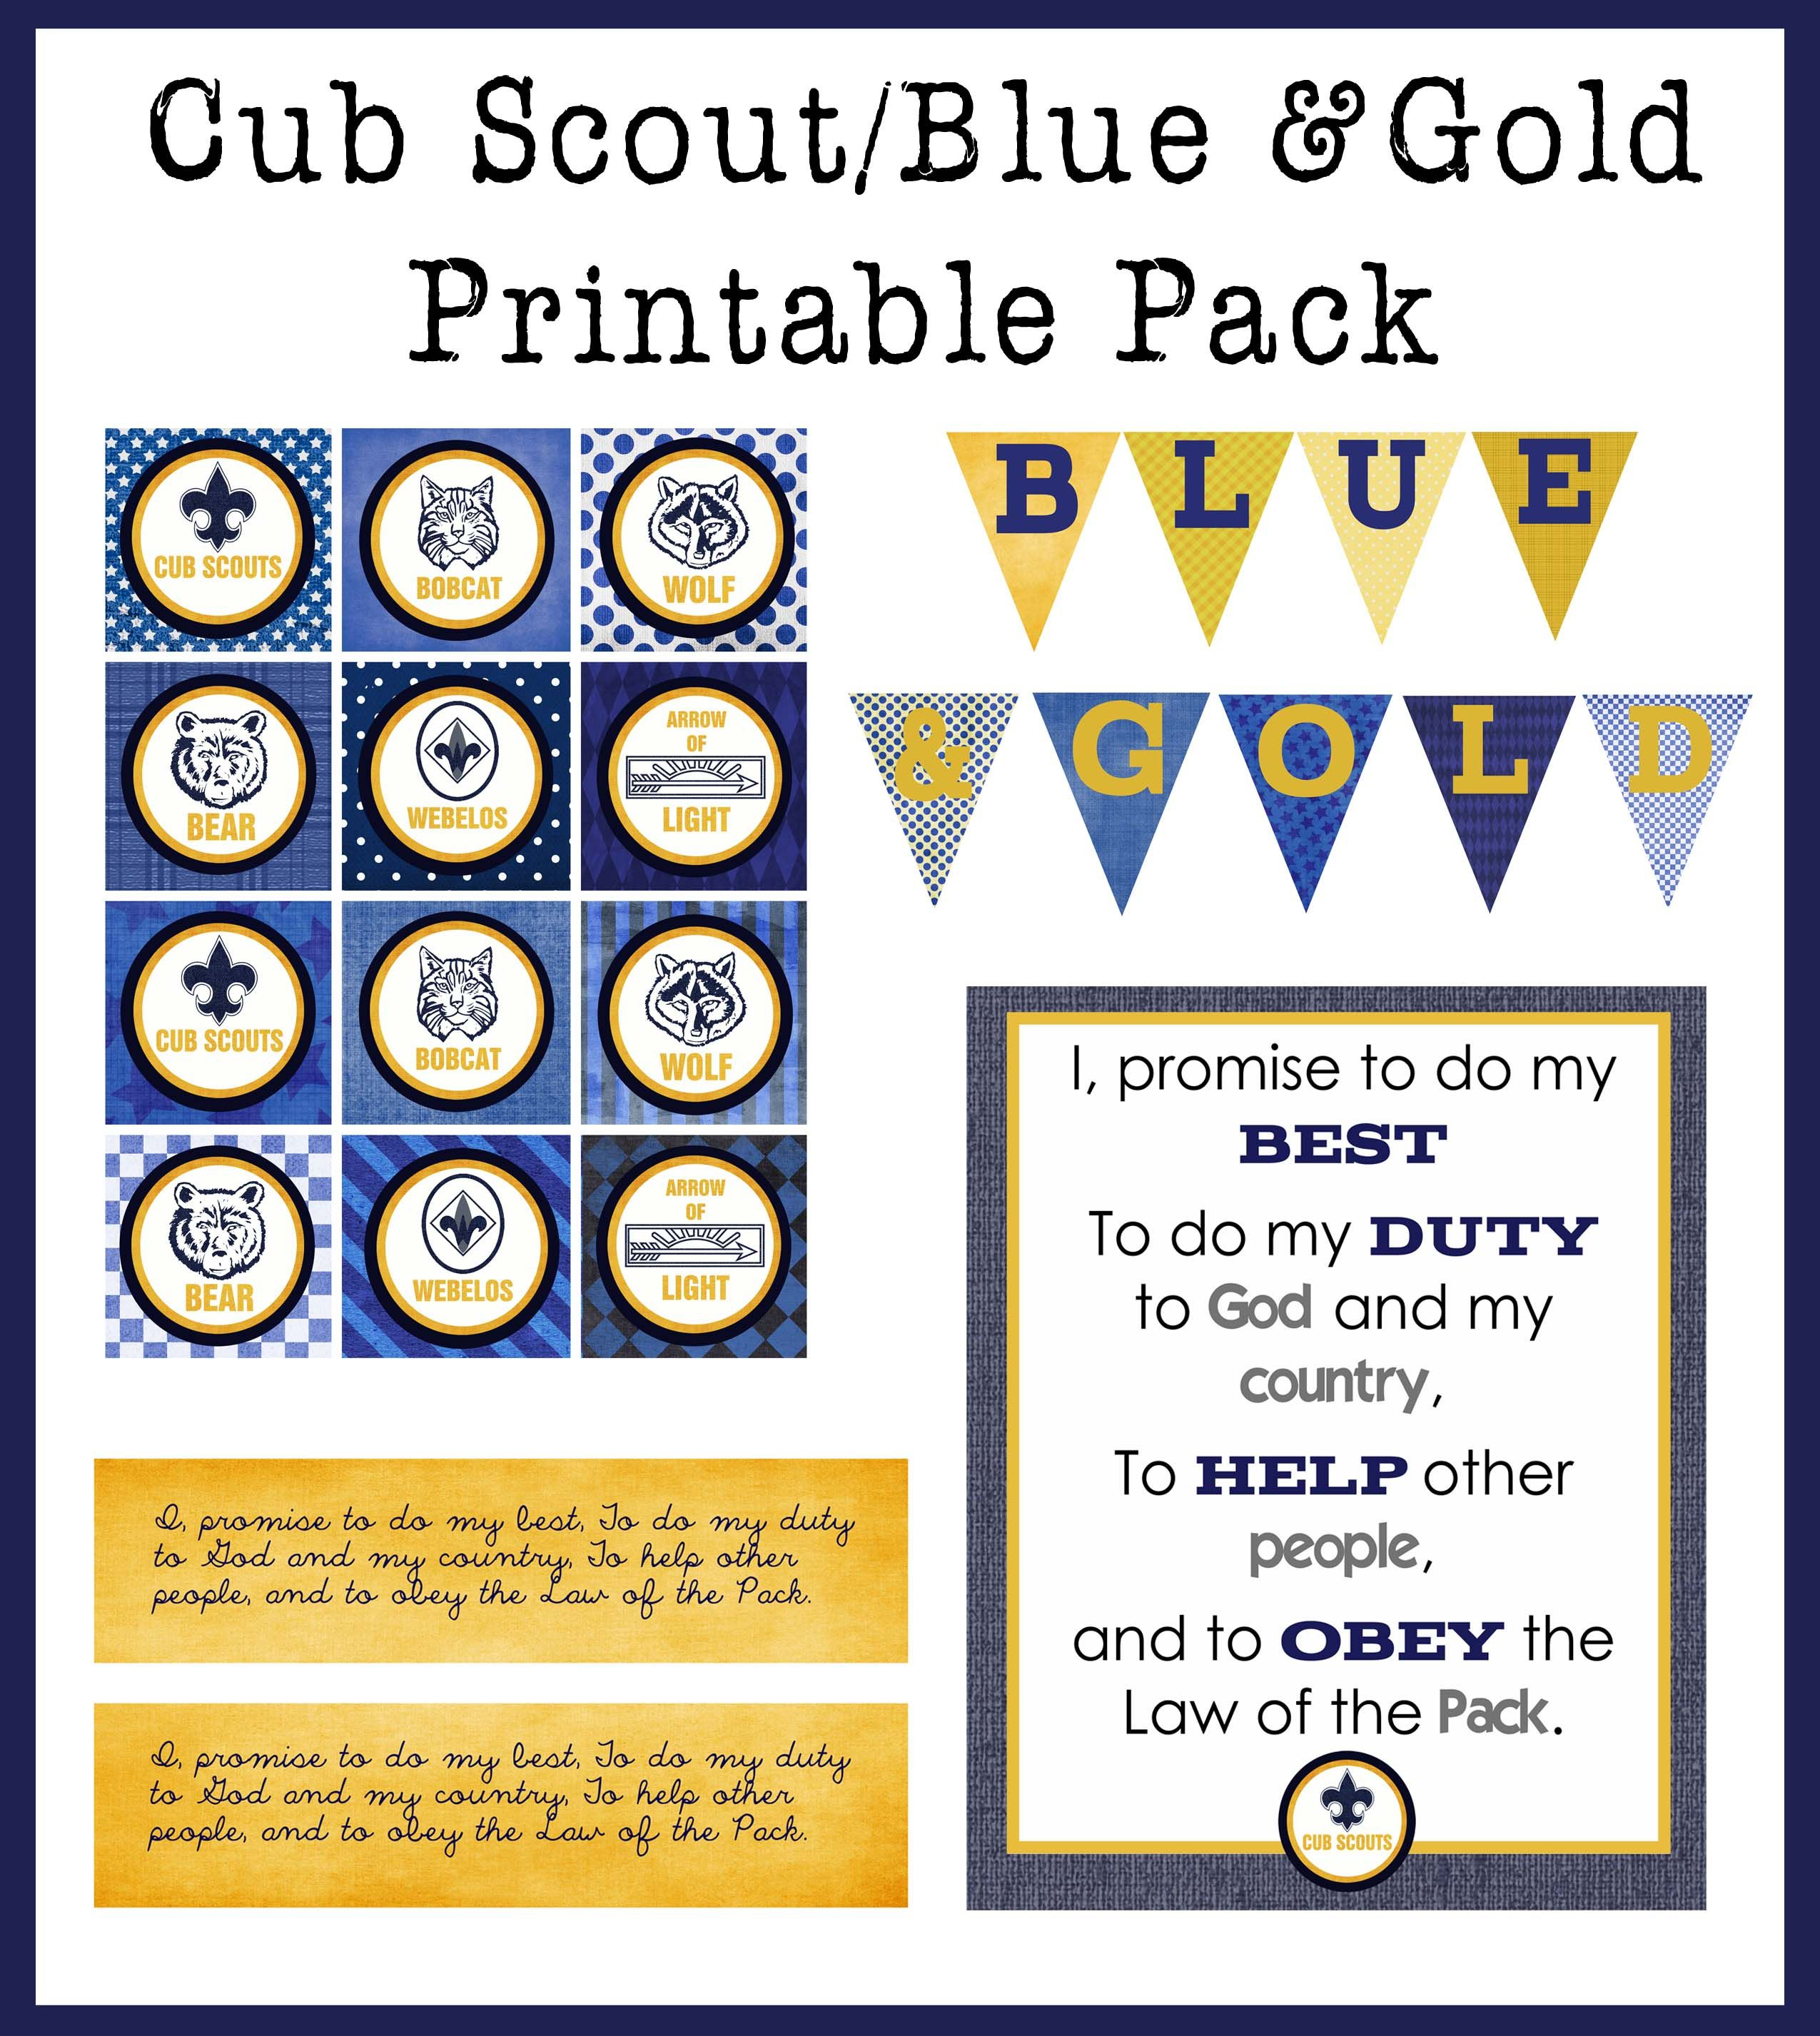 image relating to Cub Scout Oath Printable referred to as Pin upon LDS - FHE Church Programs